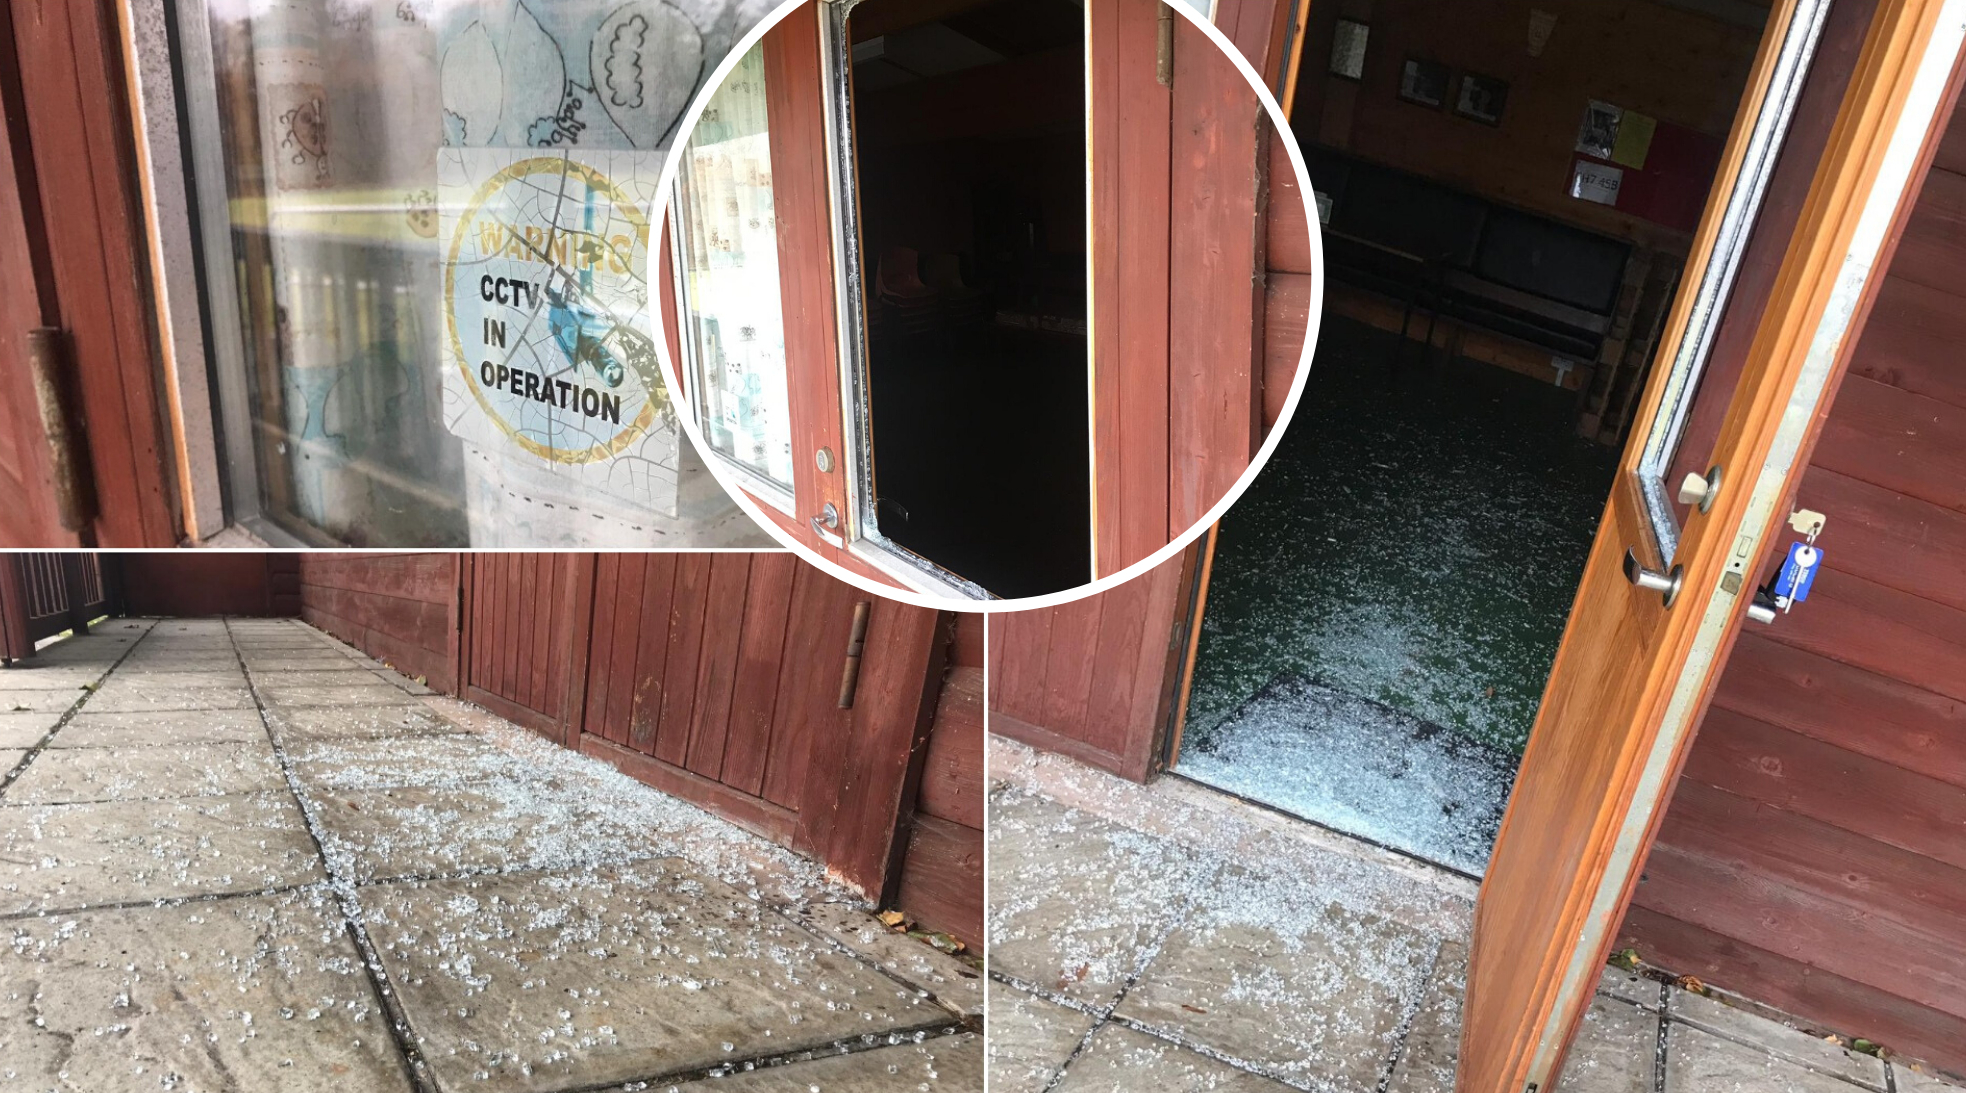 Window smashed to pieces as vandals target Leeswood Bowling Club